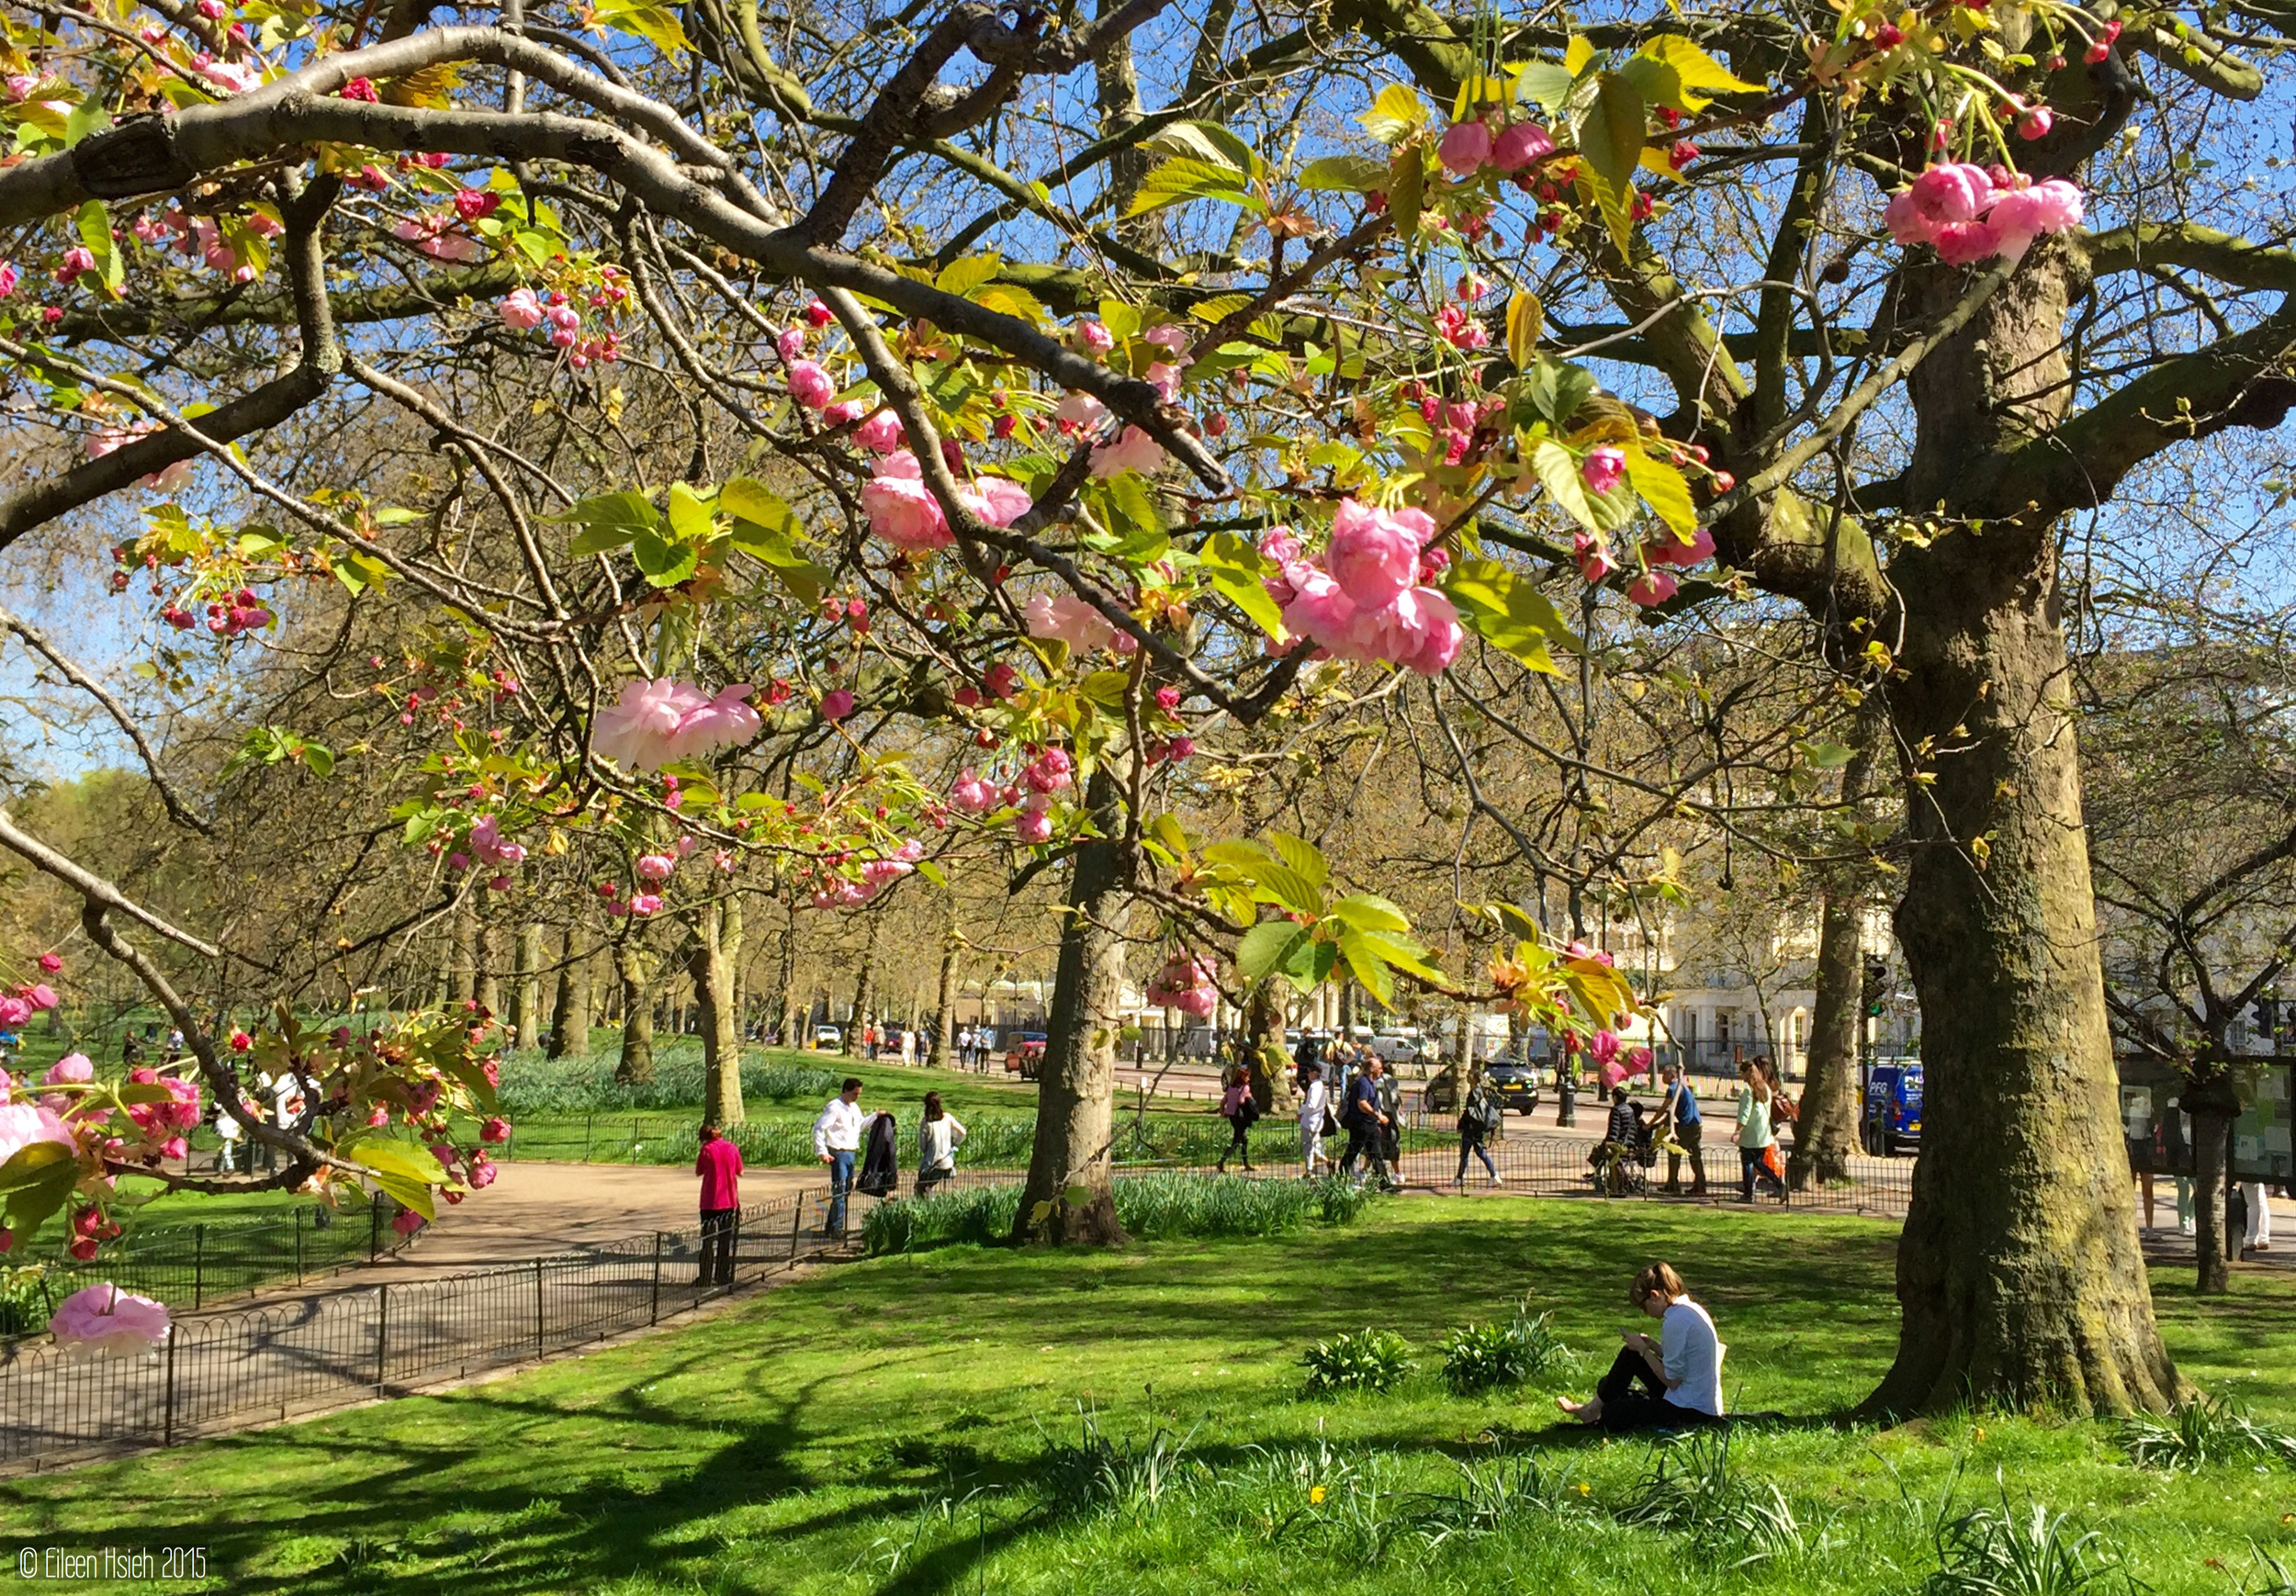 London's manyparks and gardens are the perfect places to soak up the spring sunshine. 倫敦眾多的公園與花園是享受春天陽光的最佳地點。 © Eileen Hsieh